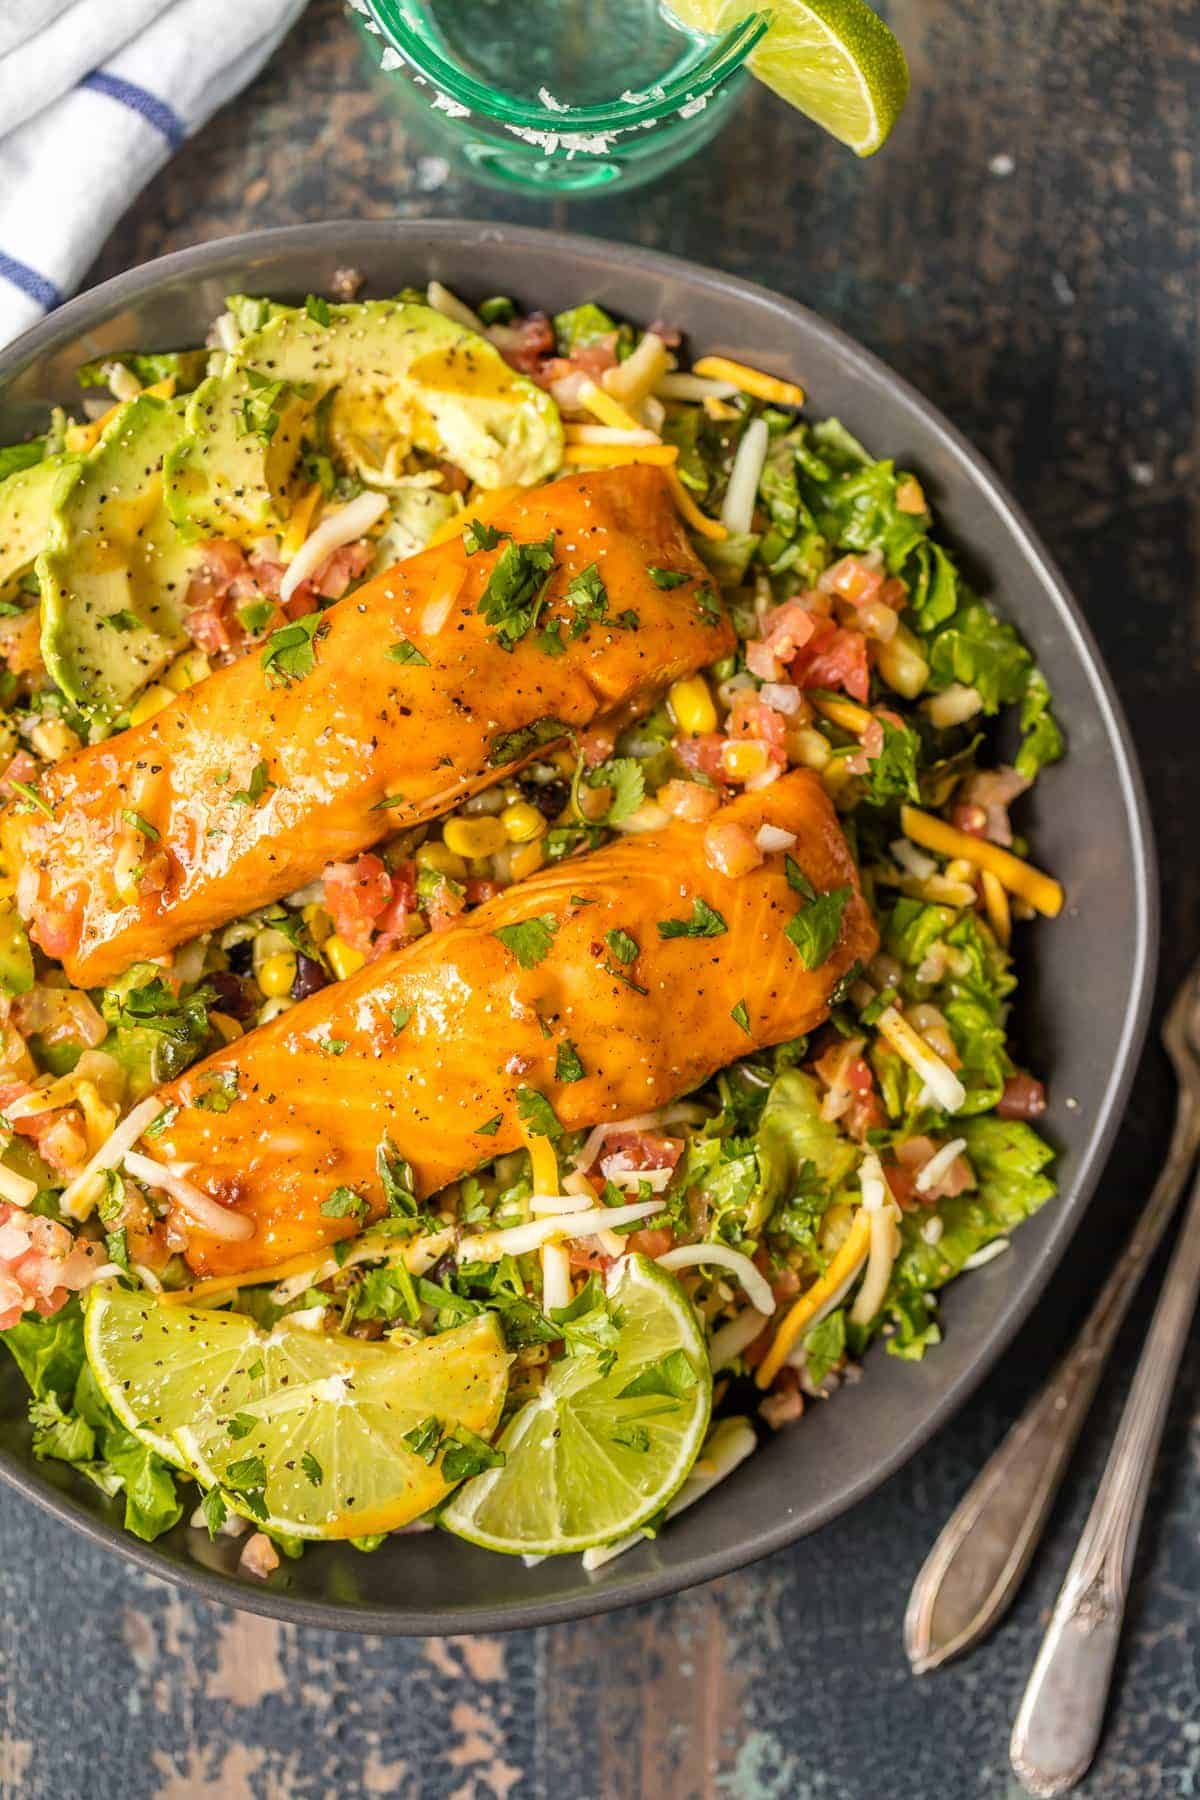 Overhead view of Tequila Lime Salmon Salad in a bowl